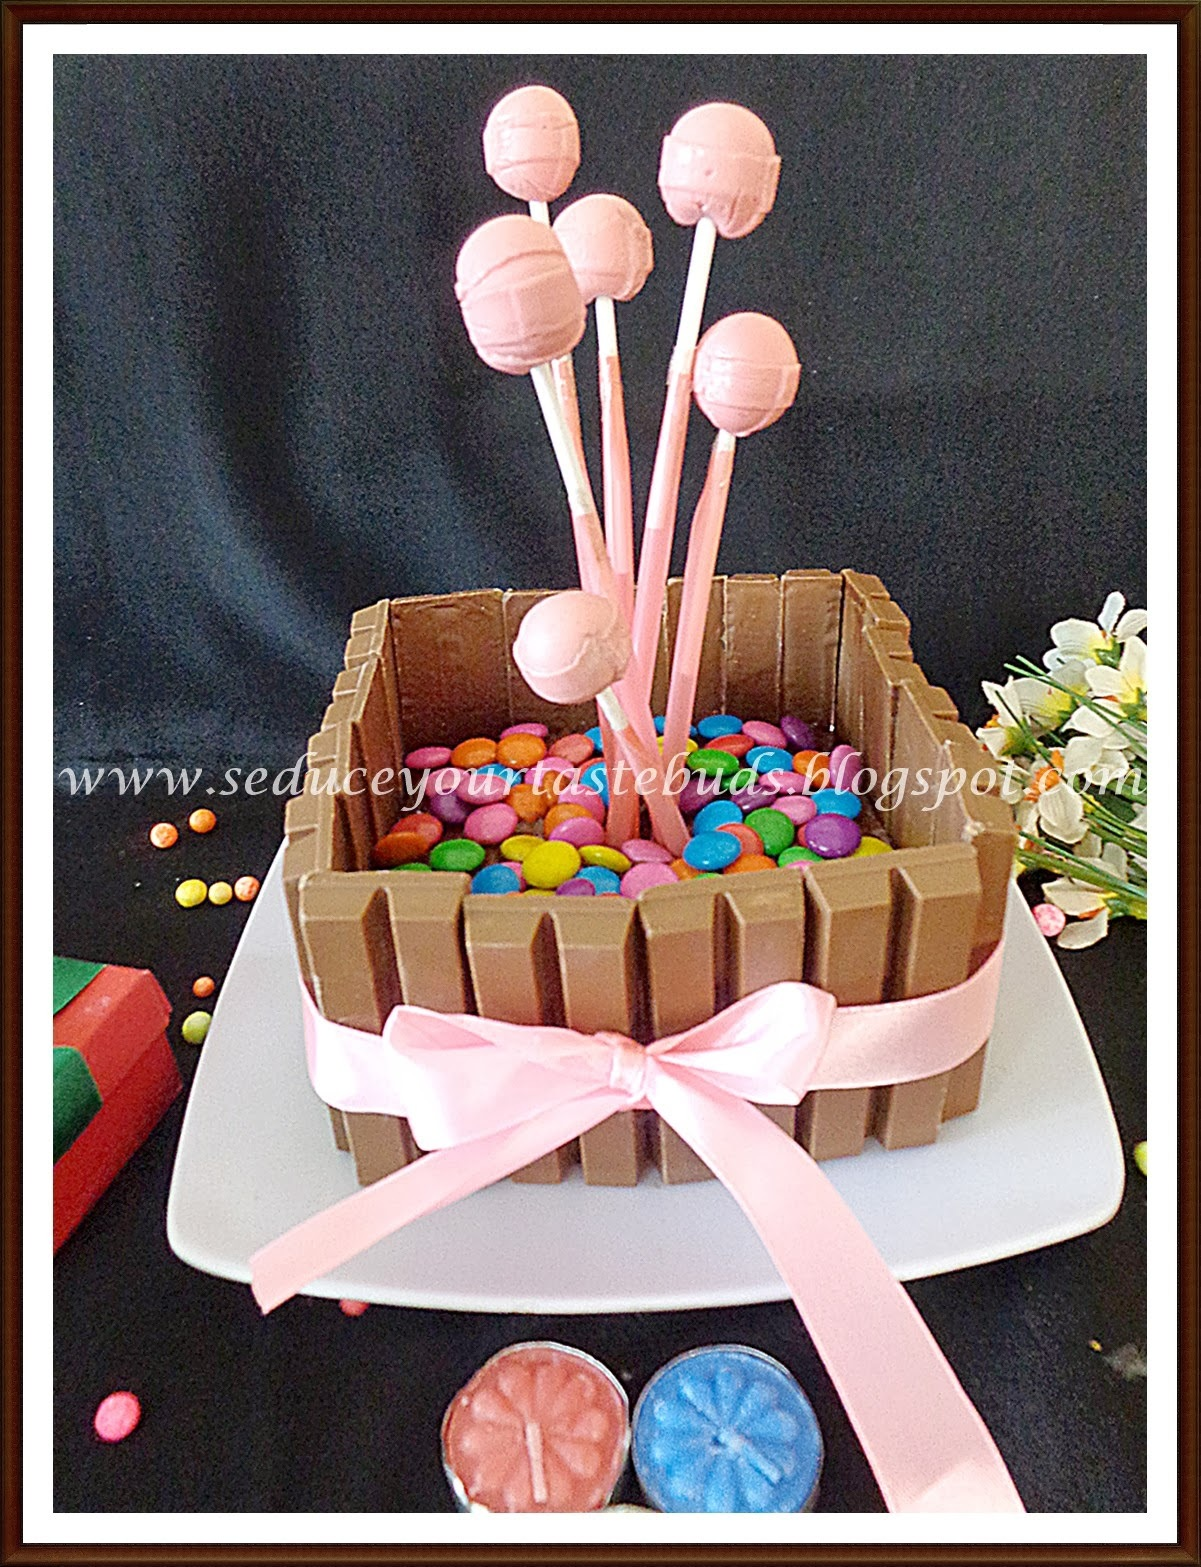 Eggless Kit-Kat Cake for Lil Angel's Birthday....